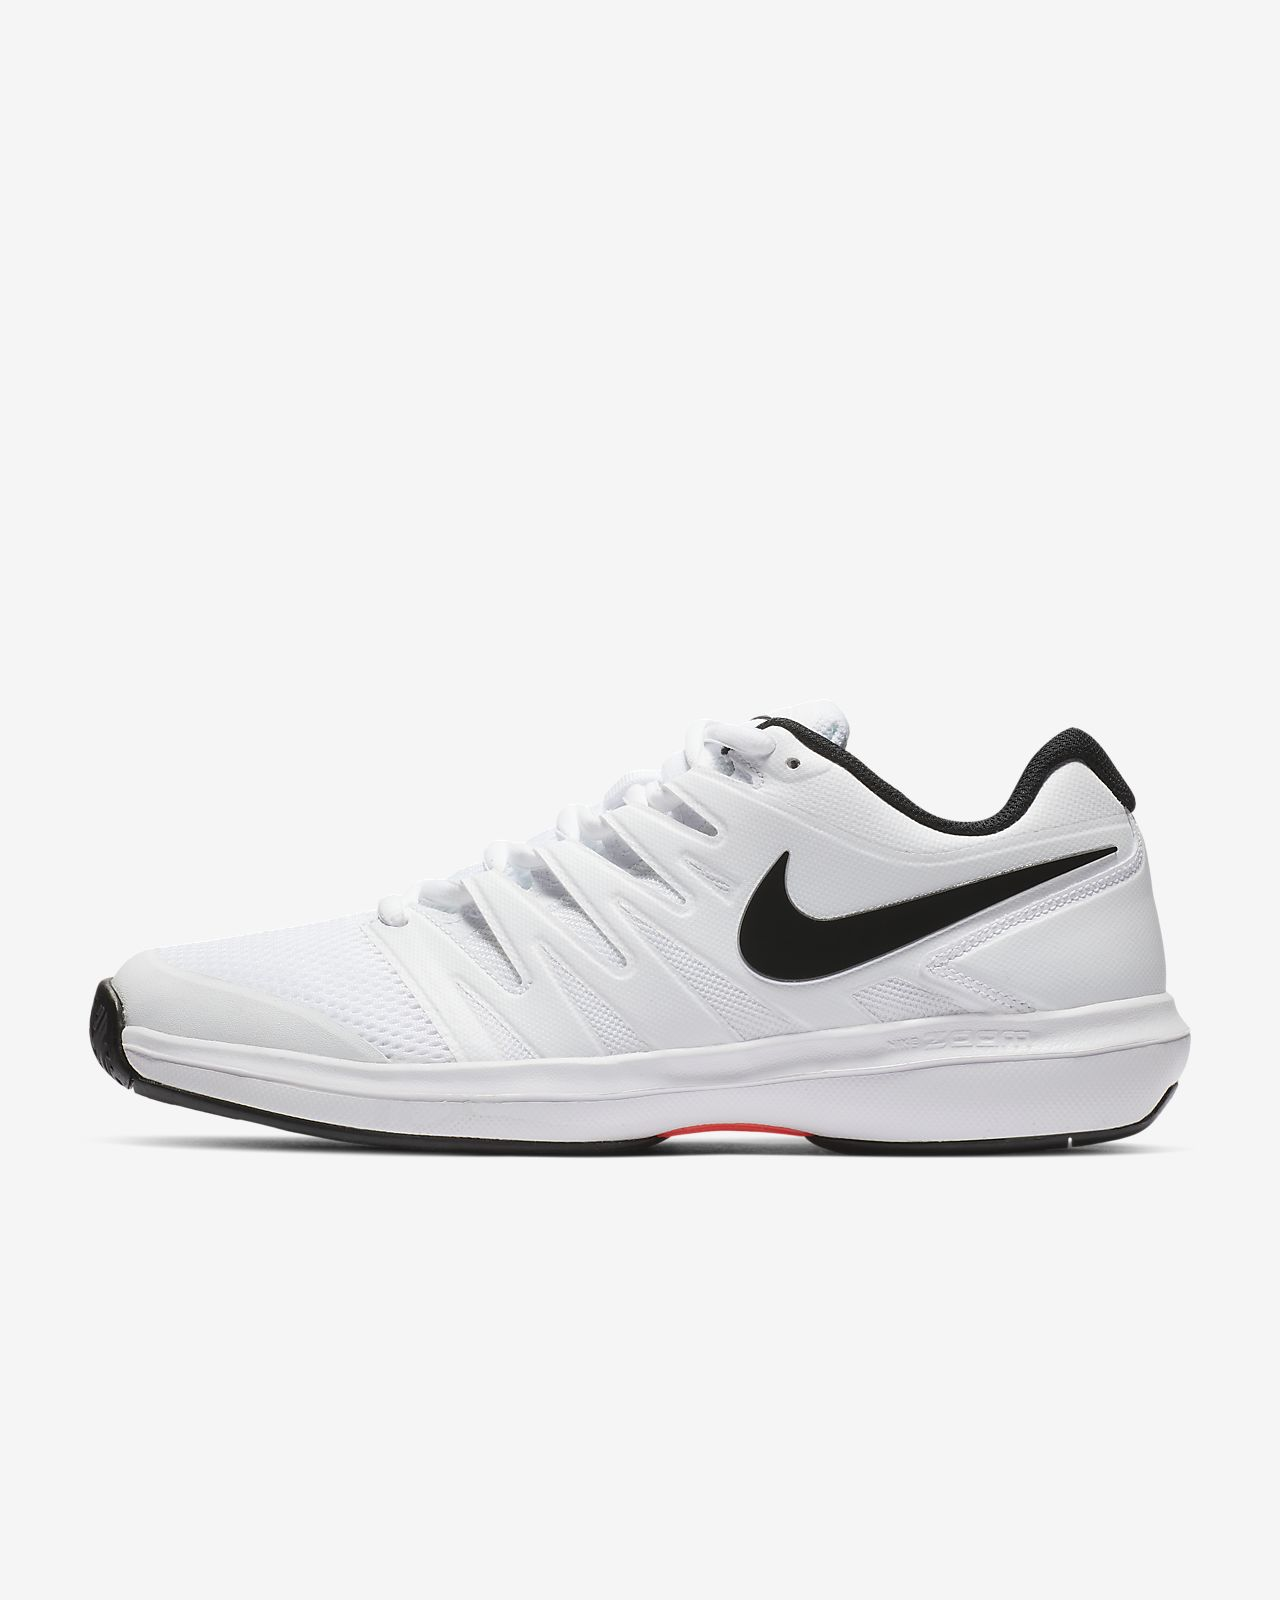 NikeCourt Air Zoom Prestige Herren-Tennisschuh